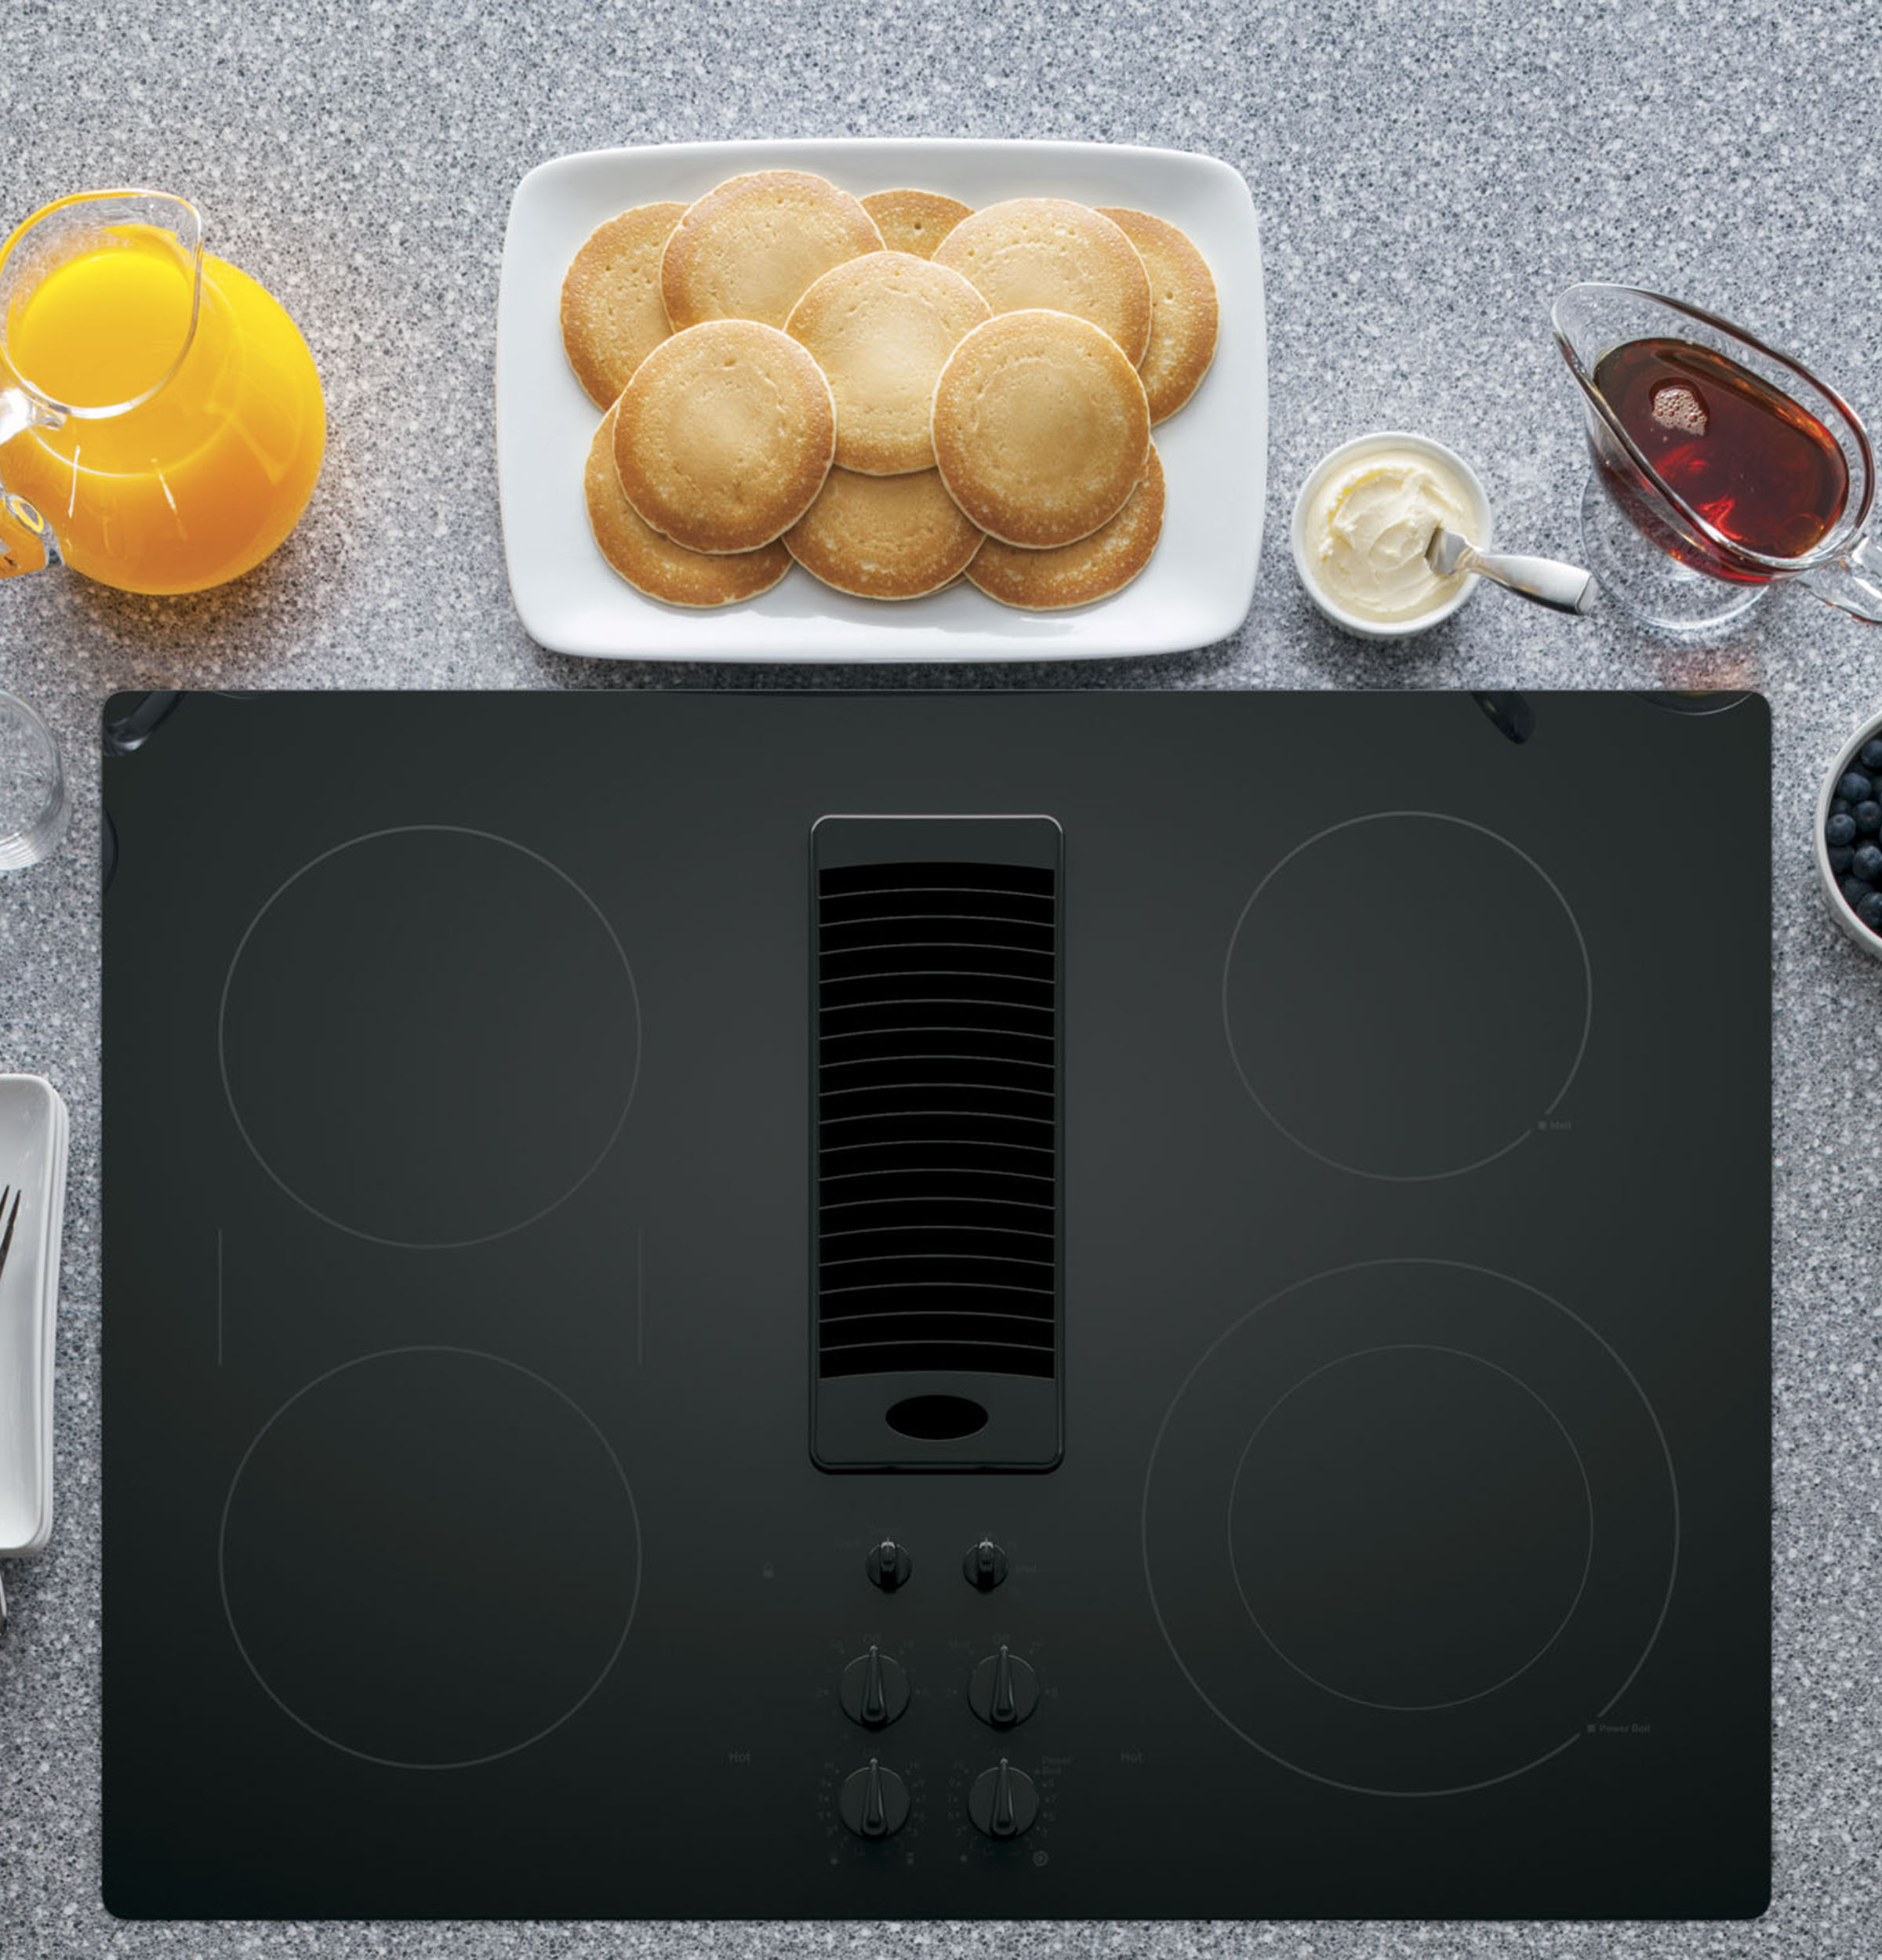 "Model: PP9830DJBB | GE Profile GE Profile™ Series 30"" Downdraft Electric Cooktop"